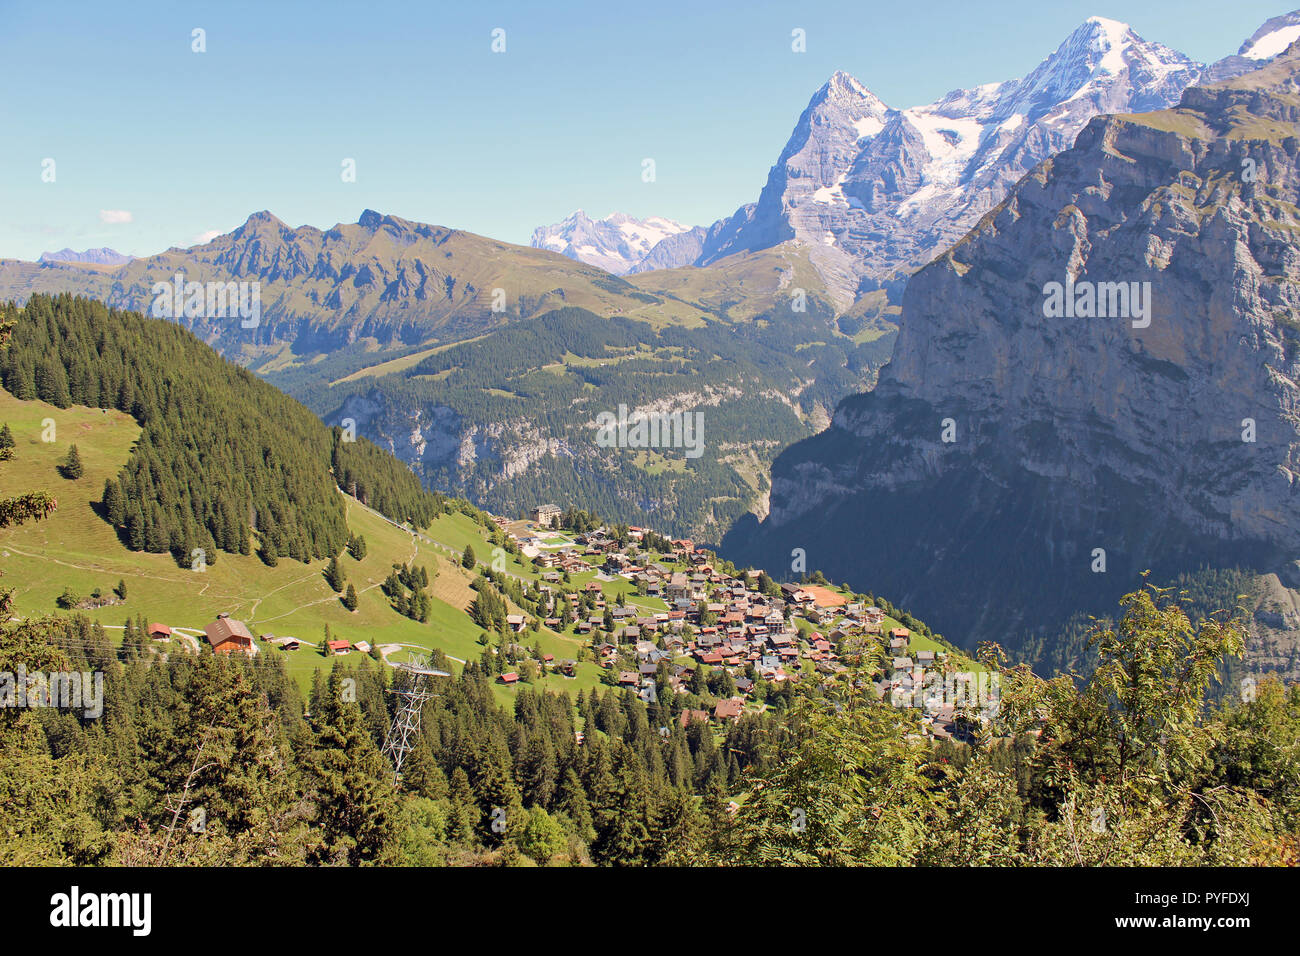 Breathtaking, traffic-free village of Murren in the Bernese Oberland, Switzerland with the Eiger, Monch and Jungfrau mountains in the background Stock Photo